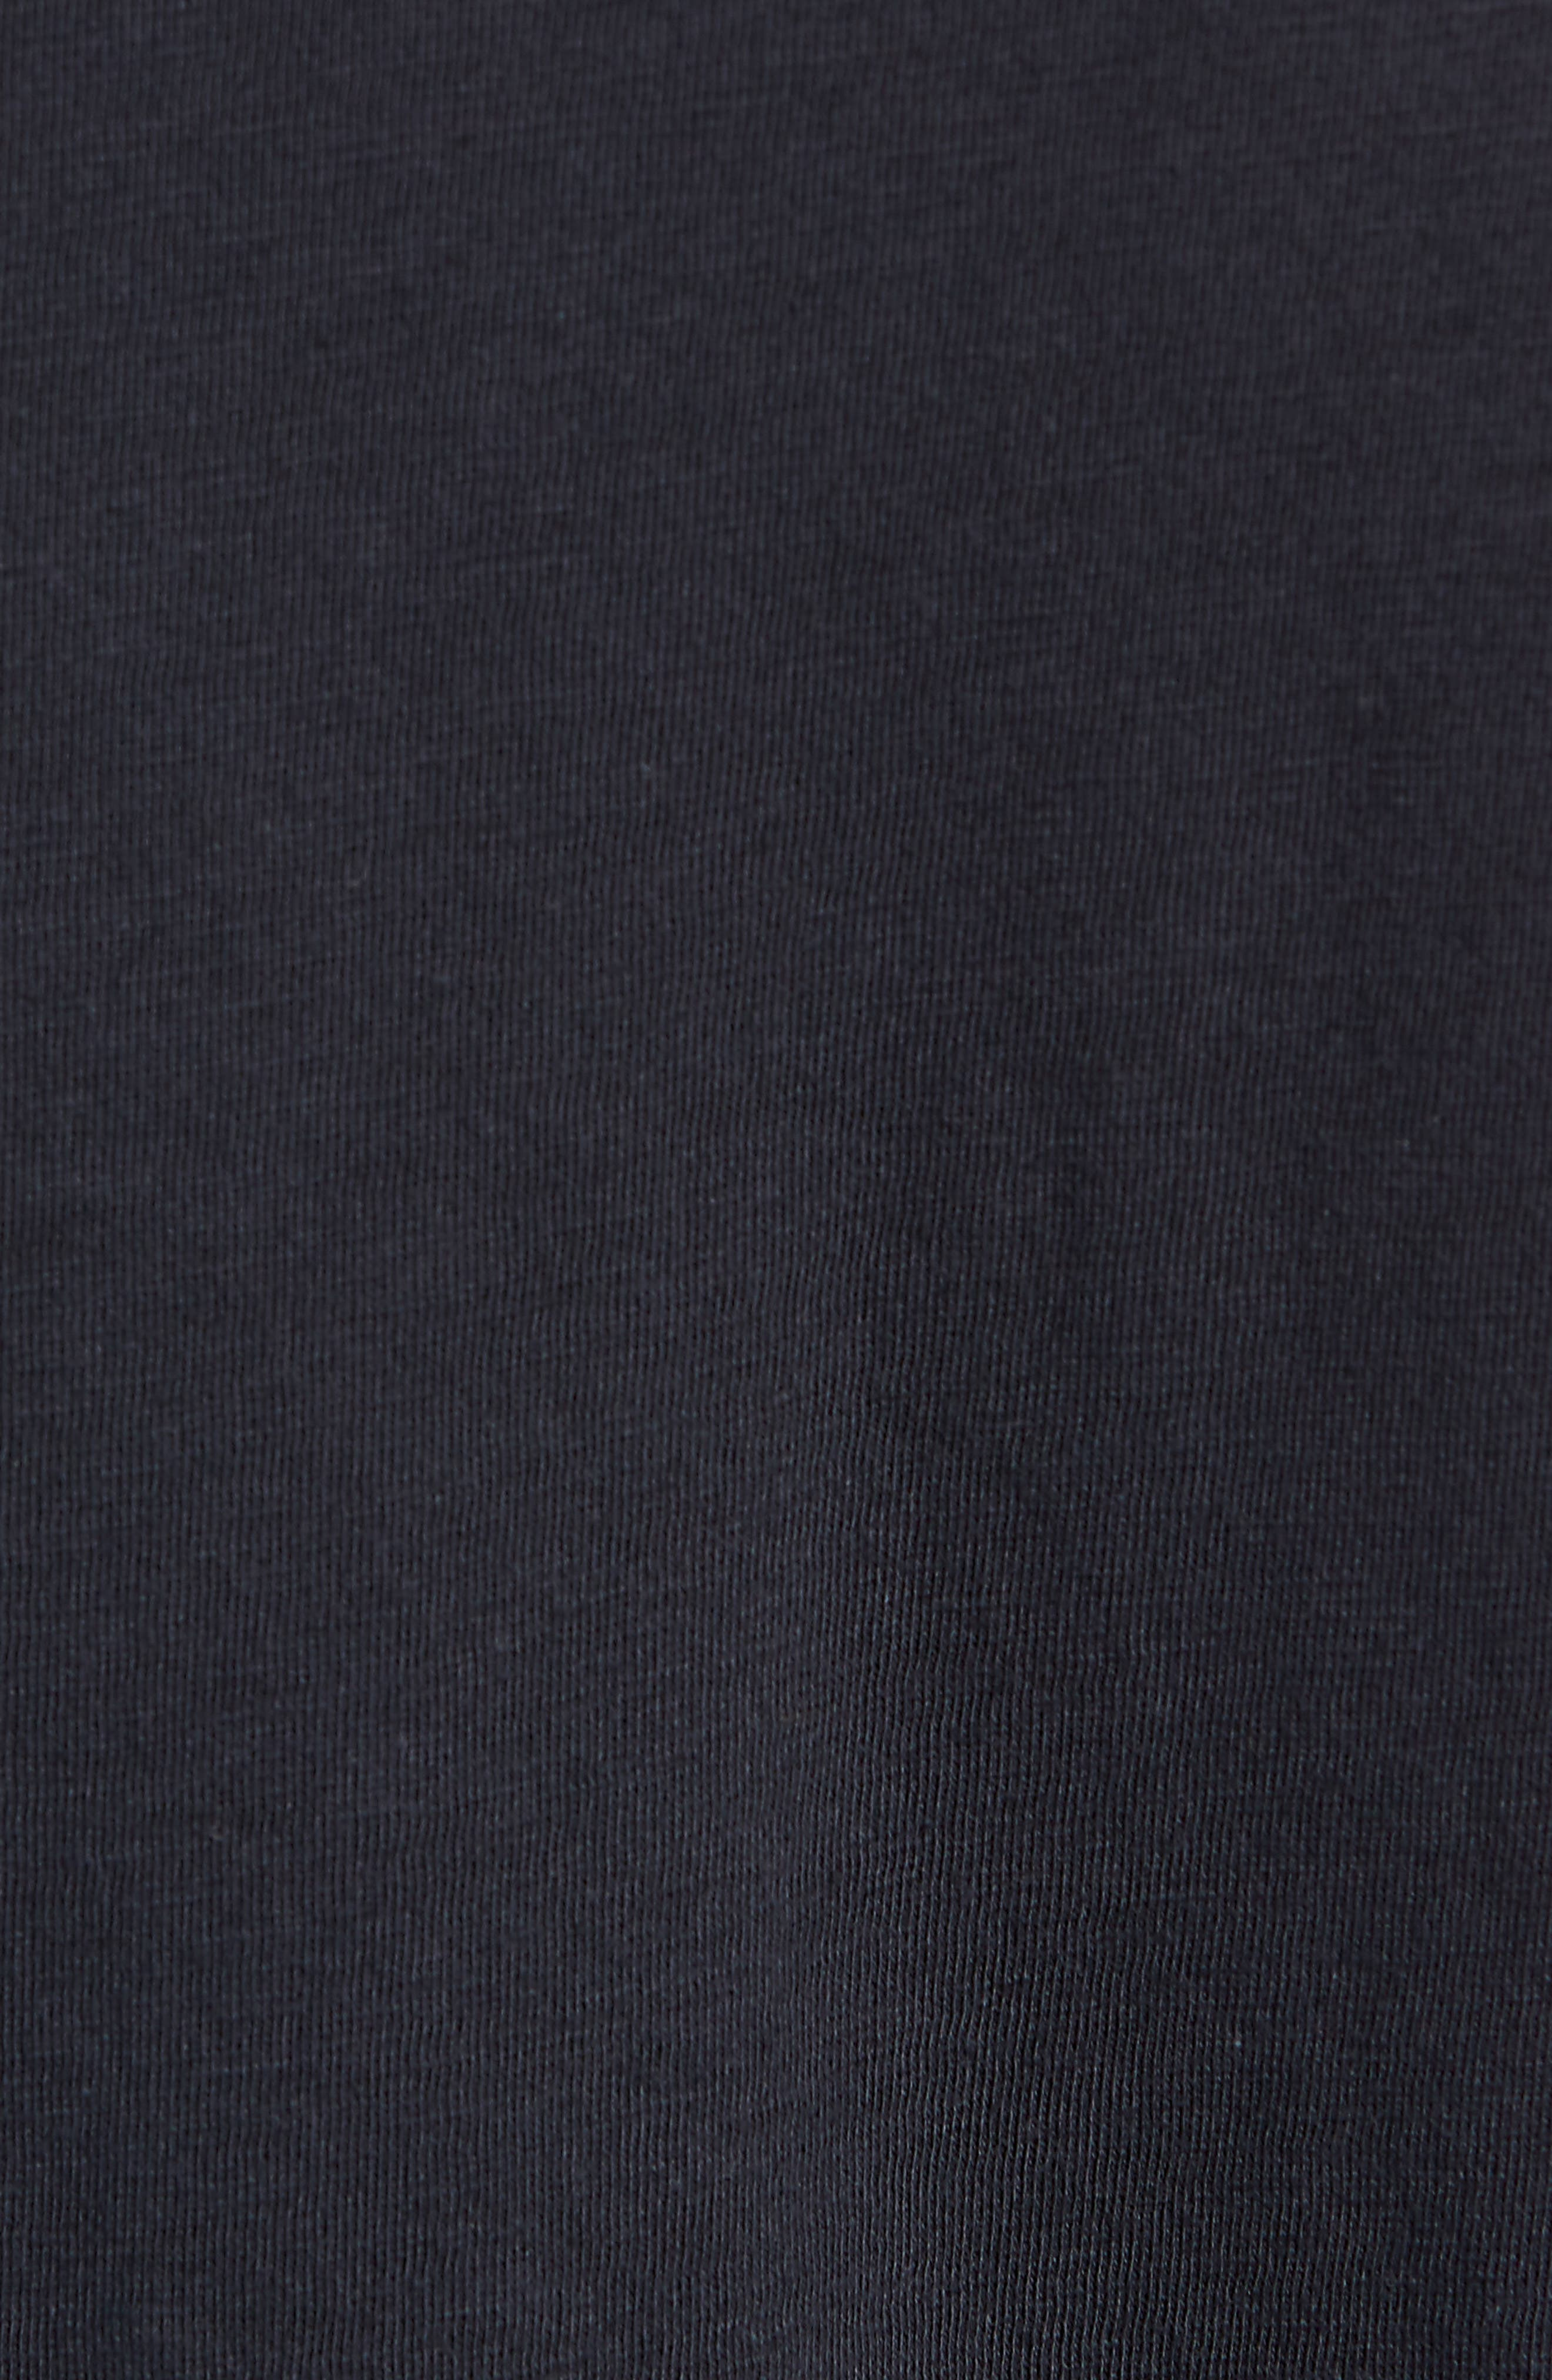 The Who Trim Fit T-Shirt,                             Alternate thumbnail 5, color,                             Black The Who